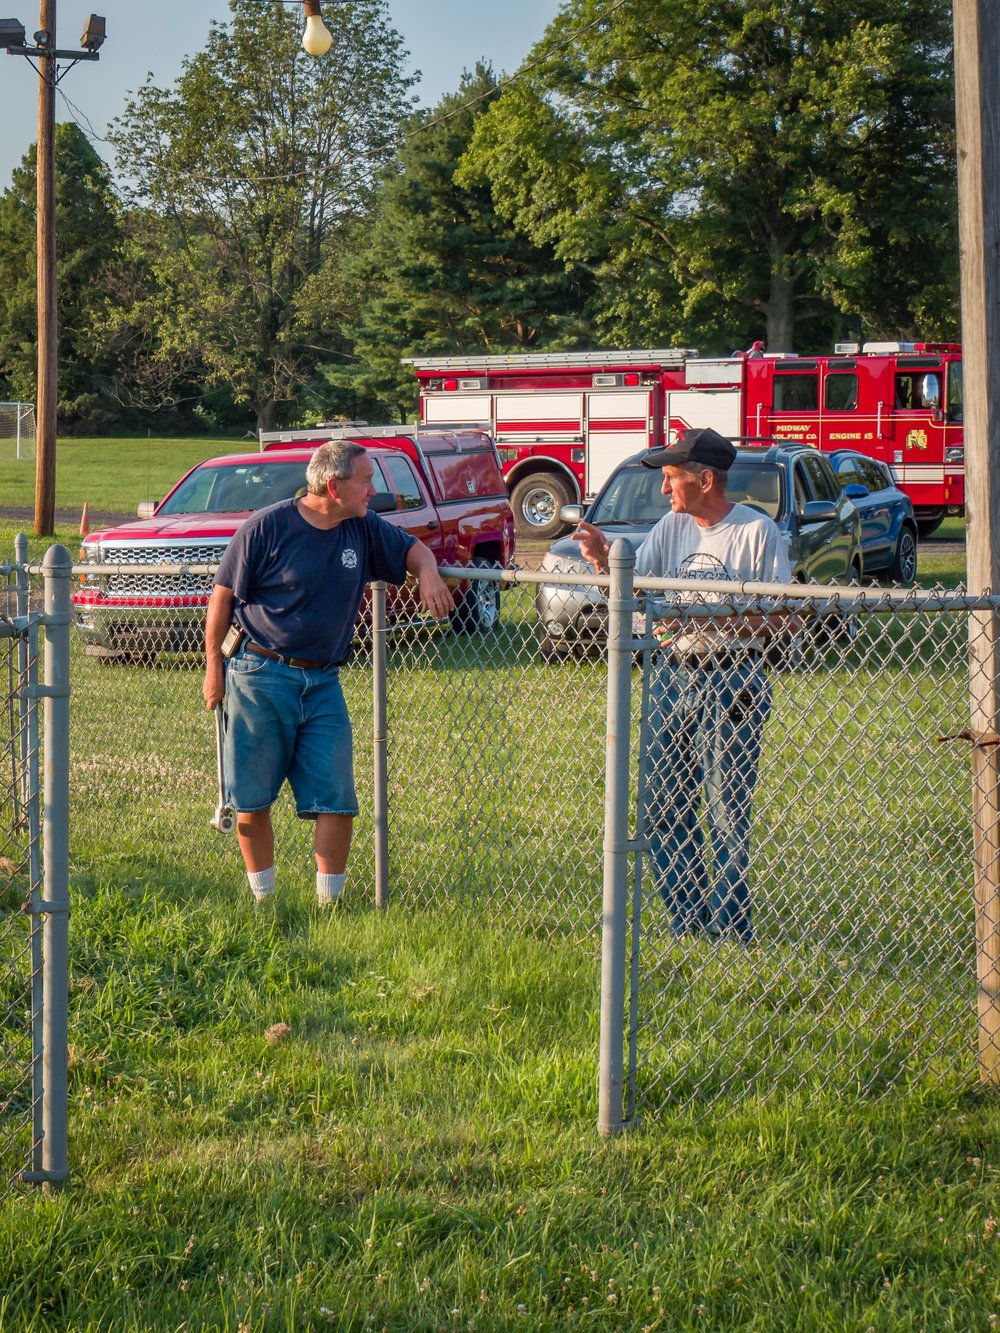 6 - 2018 Carnival Clean-up - 20180710 - untitled-7108788.jpg